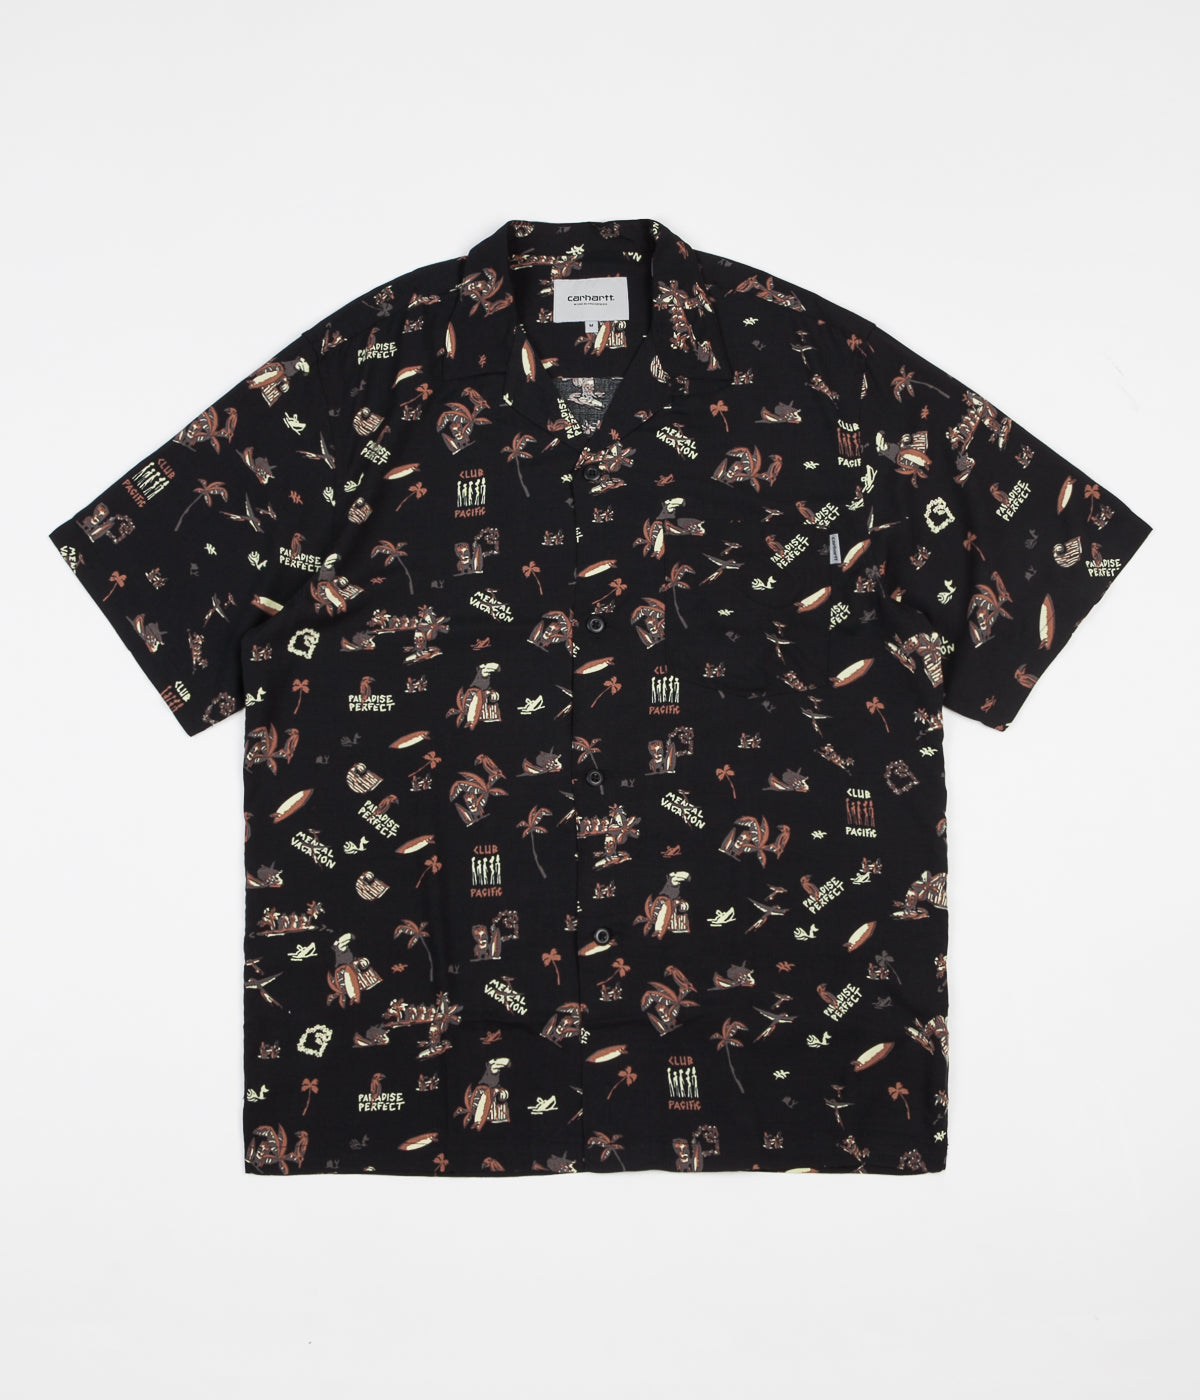 Carhartt Club Pacific Short Sleeve Shirt - Black